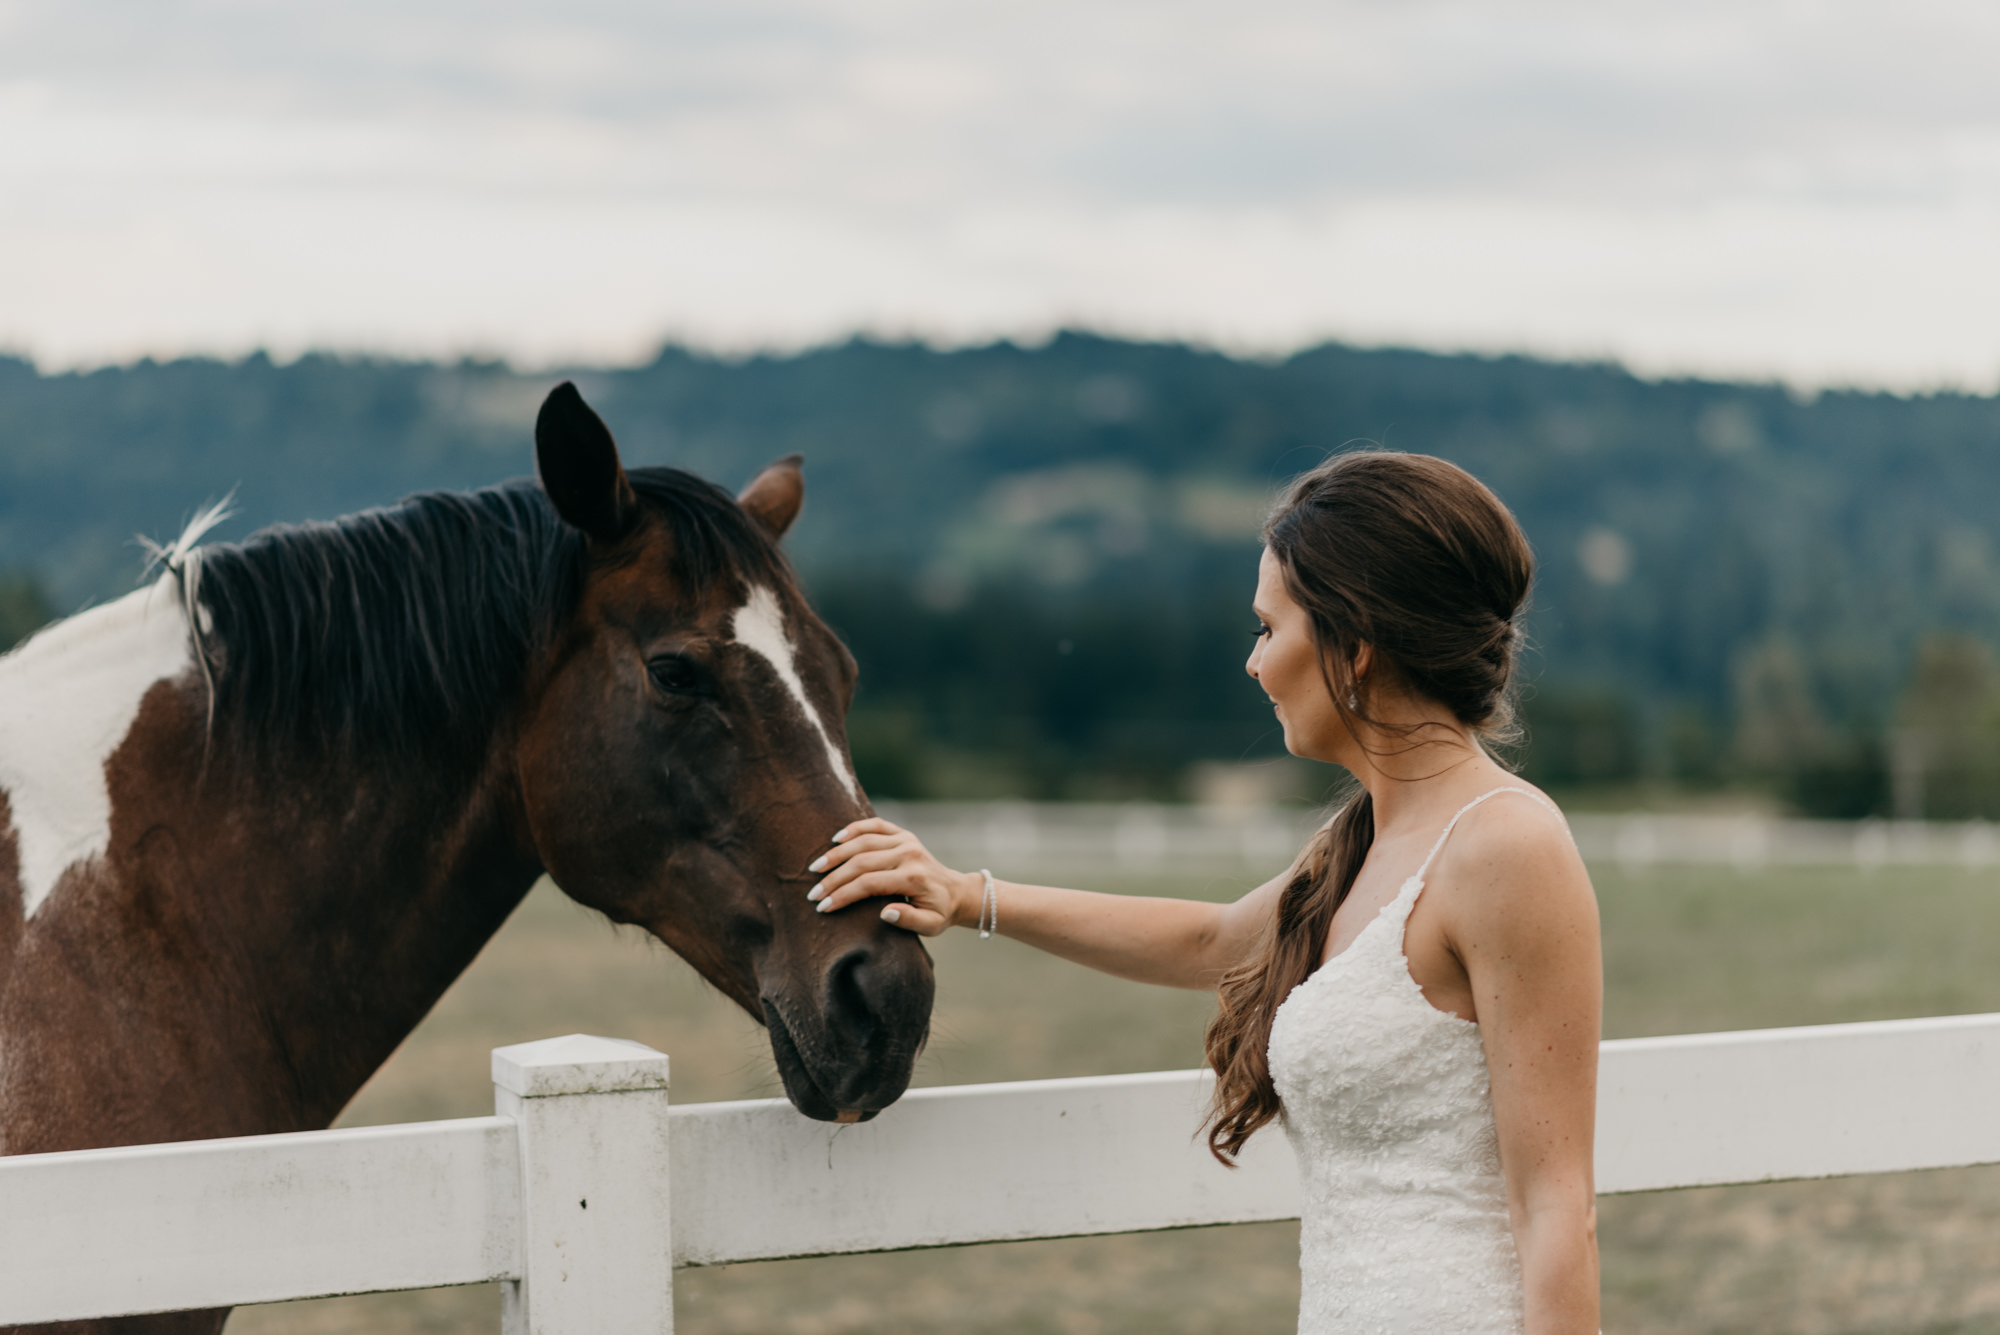 190-barn-kestrel-portland-northwest-horse-sunset-wedding.jpg